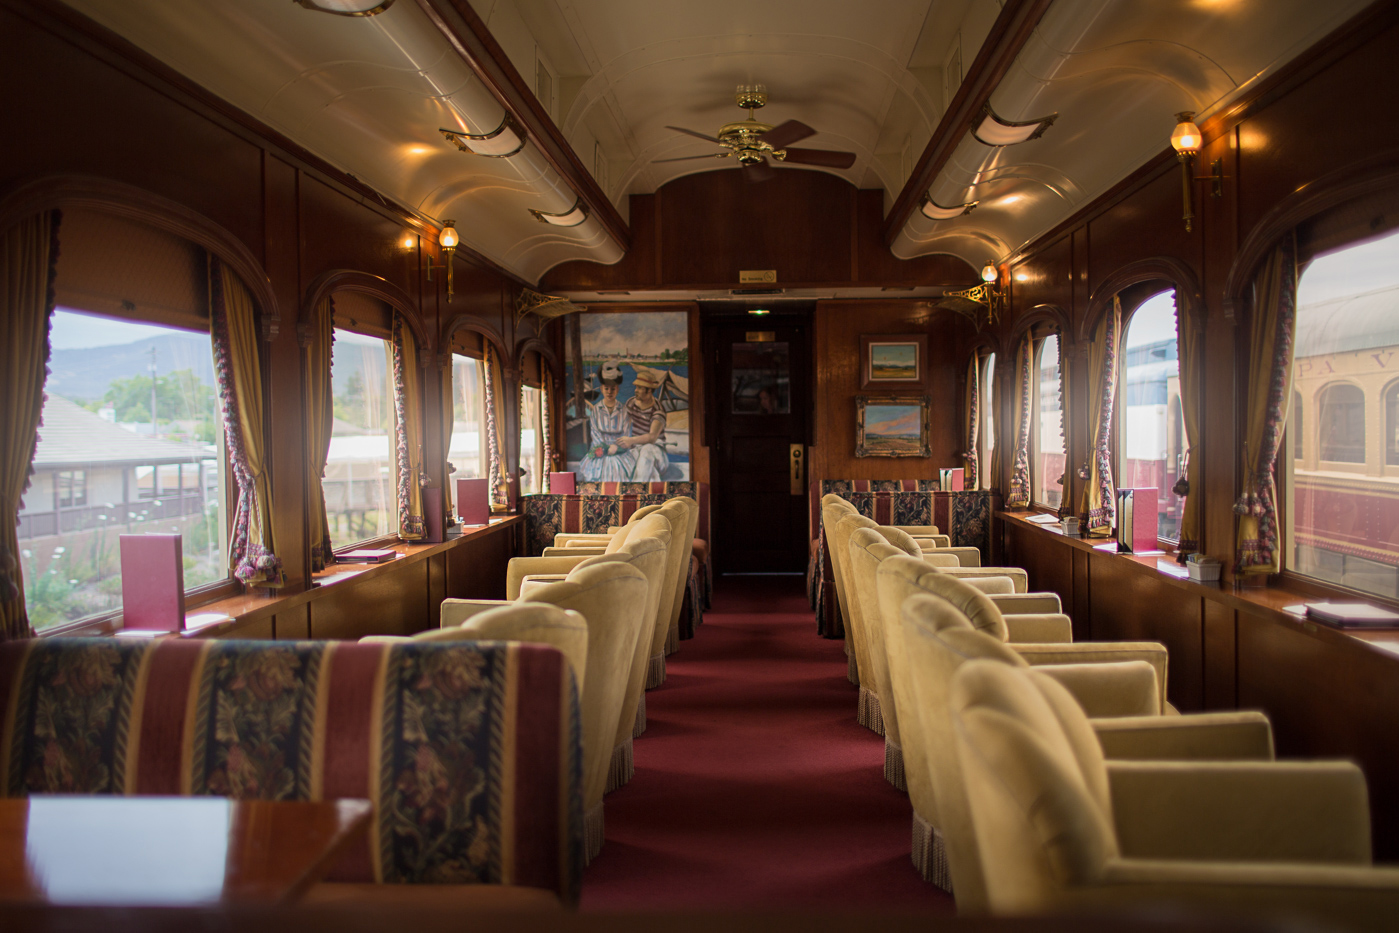 Riding the Napa Wine Train